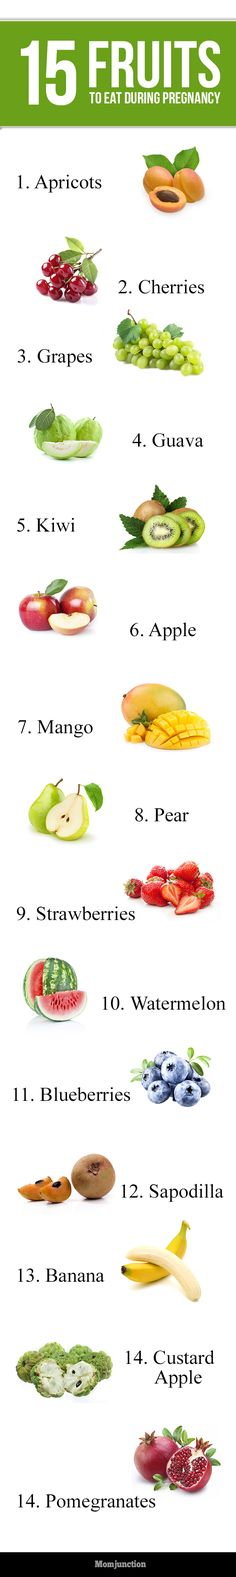 Nutritious Fruits To Eat During :Here are the different kinds of fruits you can eat during your pregnancy. These are all very healthy for your baby's development and will provide you with ample nutrition and energy. Pregnancy Eating, Pregnancy Nutrition, Pregnancy Health, Pregnancy Care, First Pregnancy, Pregnancy Workout, Pregnancy Foods, Healthy Pregnancy Snacks, Pregnancy Fitness